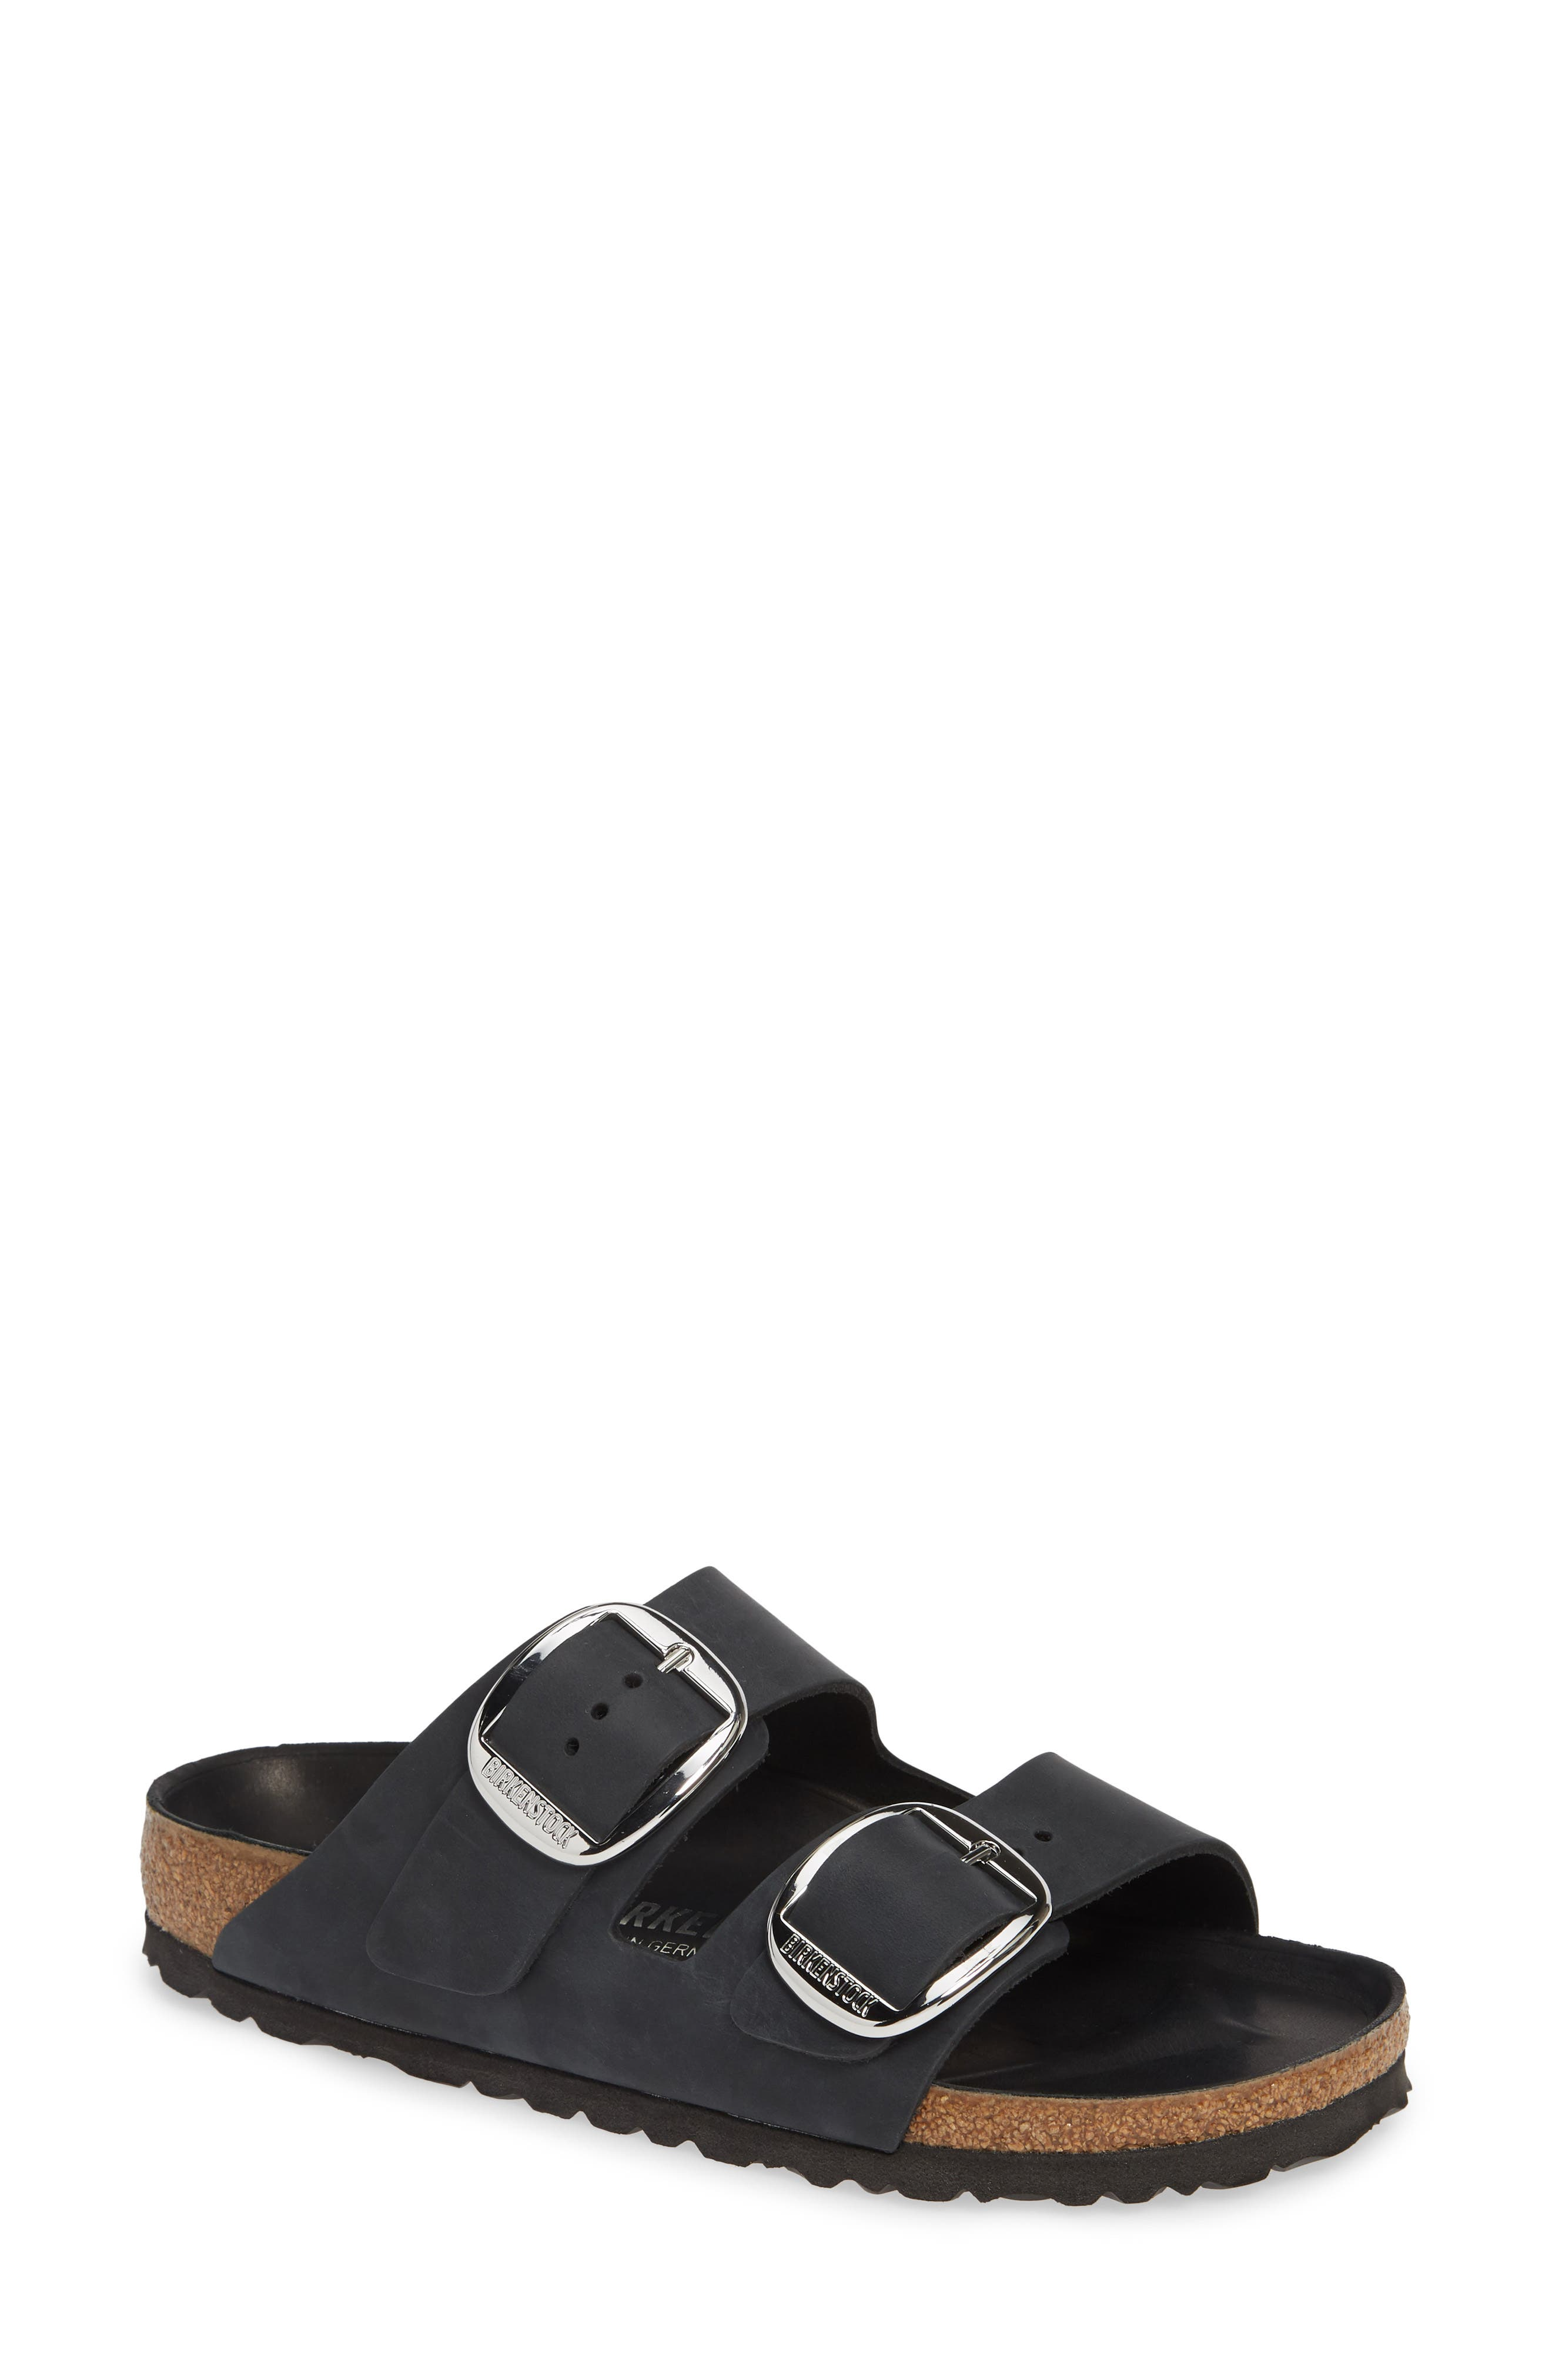 Arizona Big Buckle Slide Sandal, Main, color, BLACK OILED LEATHER